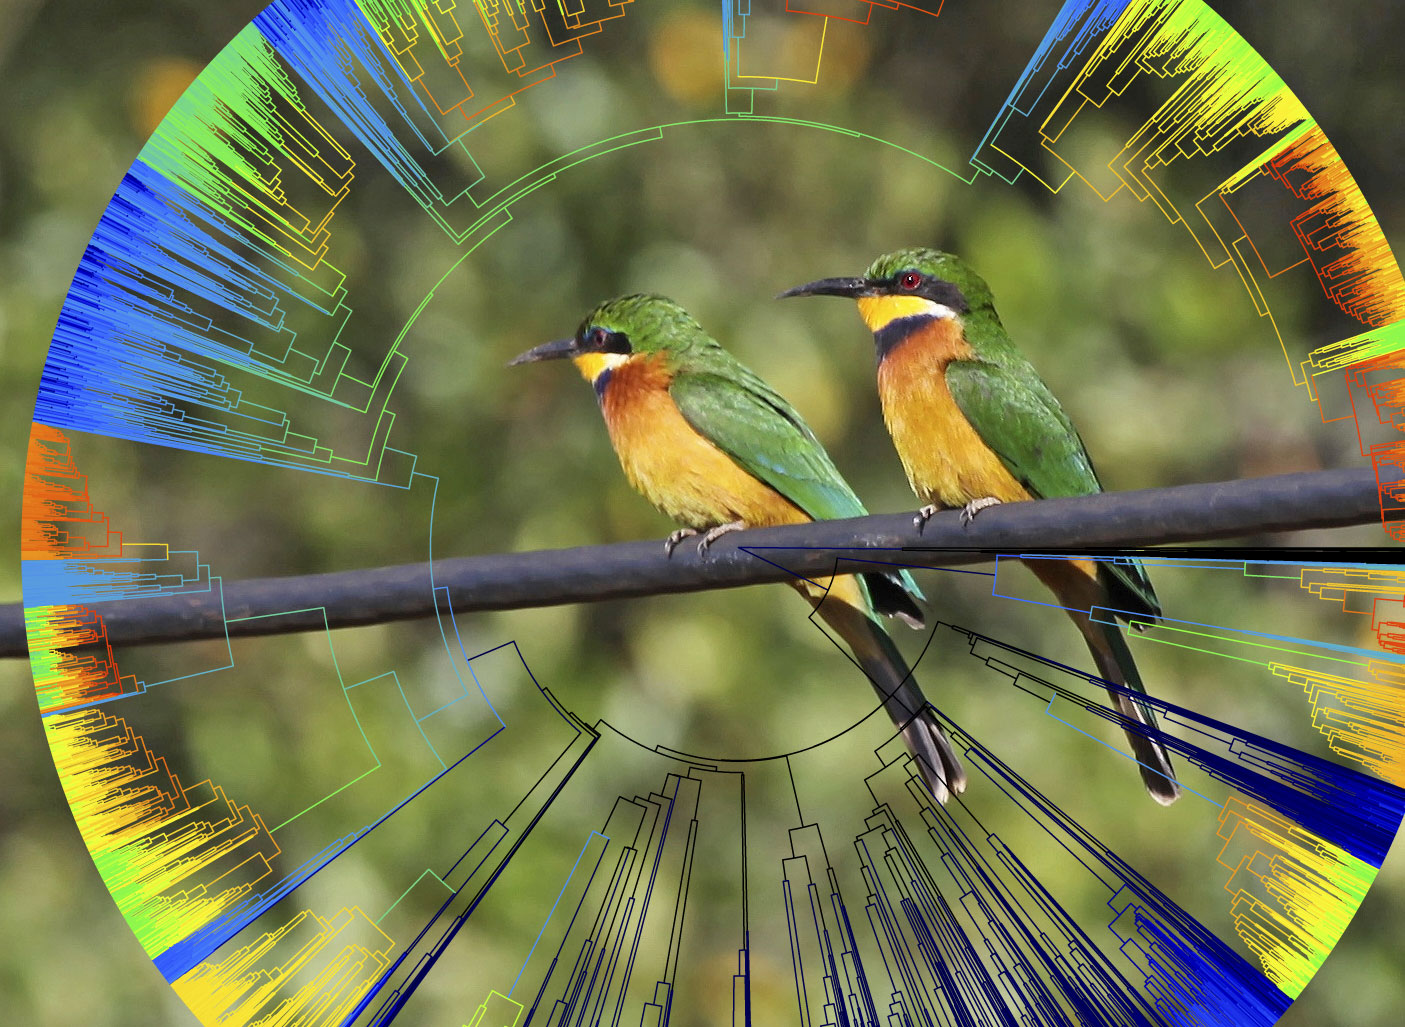 Photo of two cinnamon-chested bee-eaters superimposed on an evolutionary tree showing two-thirds of known bird species. Rabosky and Matute used the tree to test whether the ability of bird species to interbreed with other species is related to the rate at which they formed new species. Tree illustration and bird photo by Daniel Rabosky.